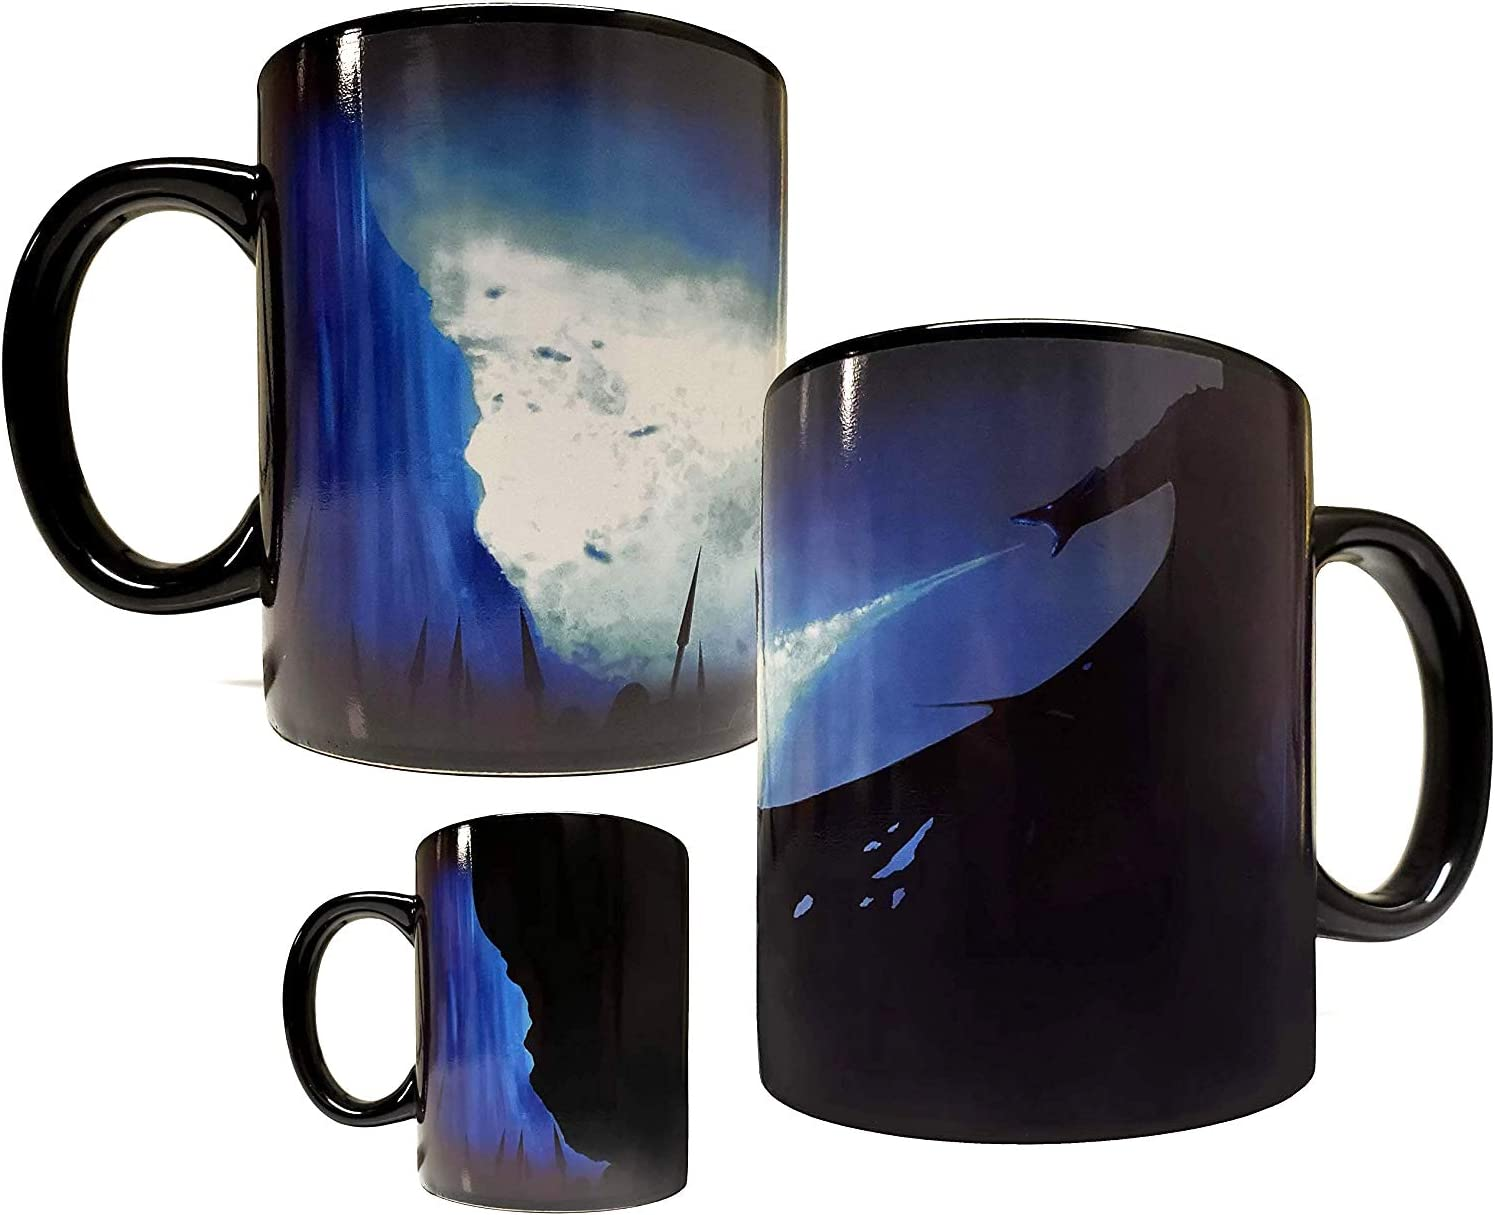 Color Changing Heat Activated ICE DRAGON -BURNING THE WALL - 11oz Ceramic Mug / Cup - Inspired by Game Of Thrones - Foam Box Protection - Grade A Quality (Perfect Gift)